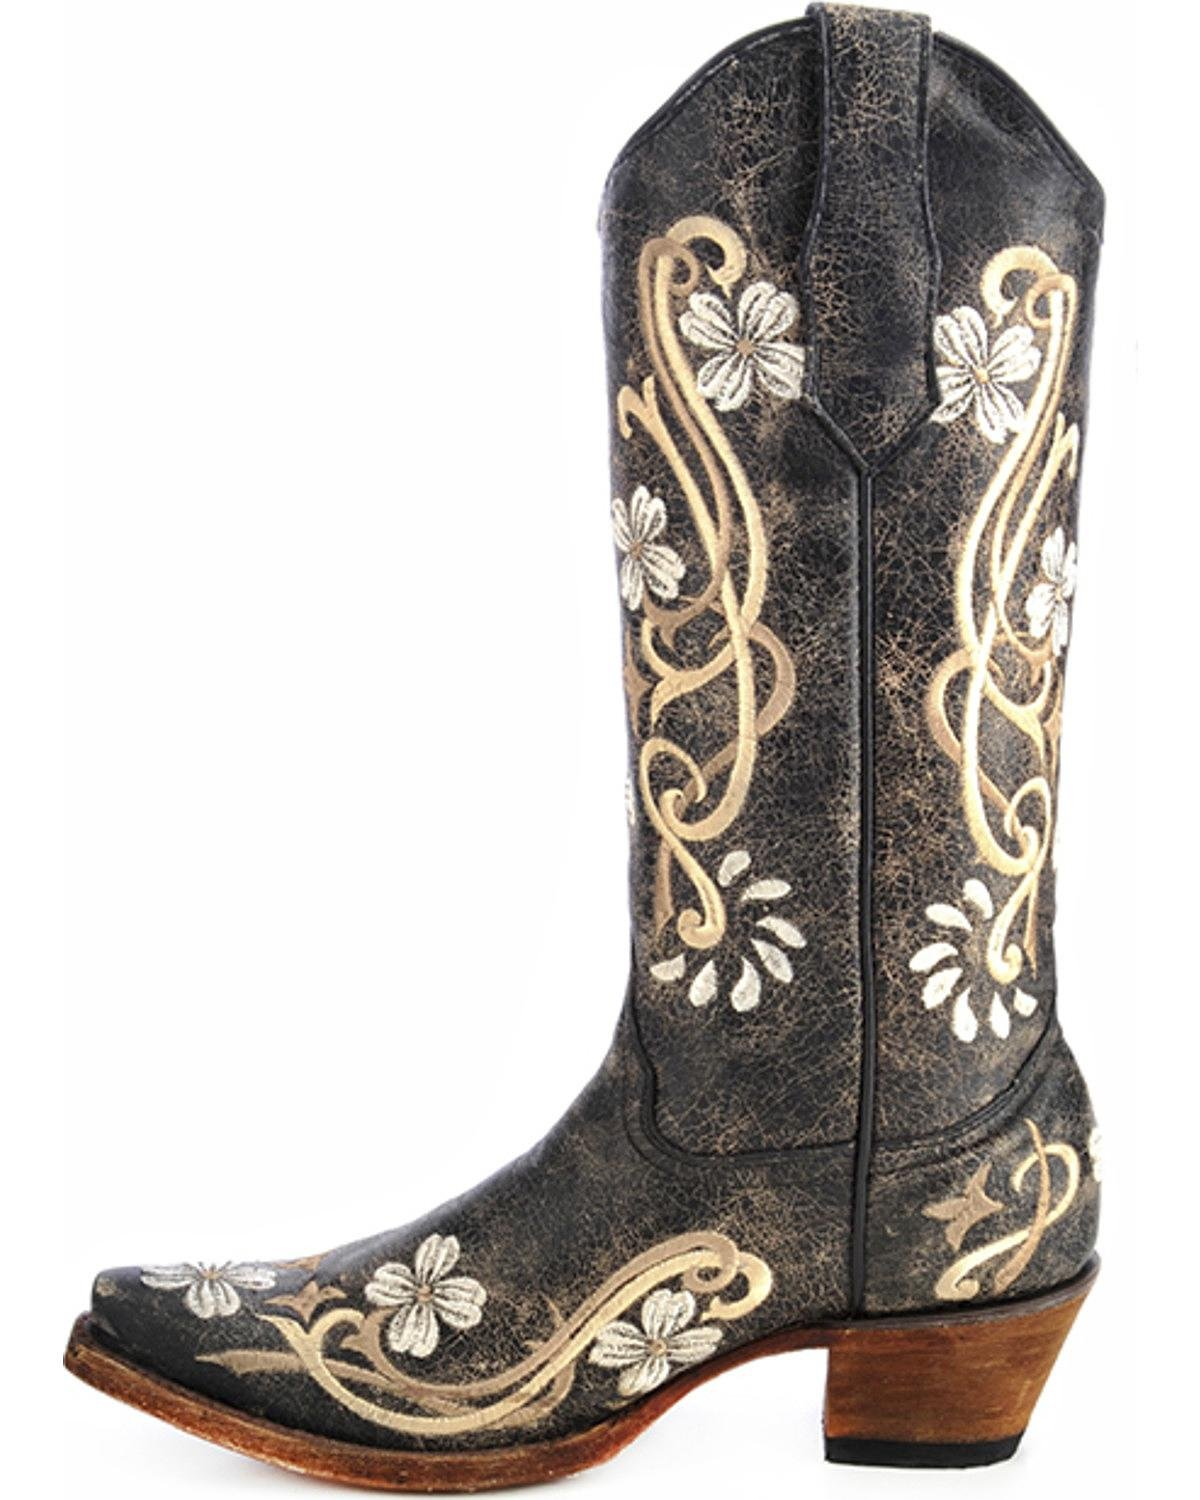 5c74d1e2afb3 Amazon.com : Corral Circle G Women's Multi-Colored Embroidered Genuine  Brown Leather Cowgirl Boots : Shoes